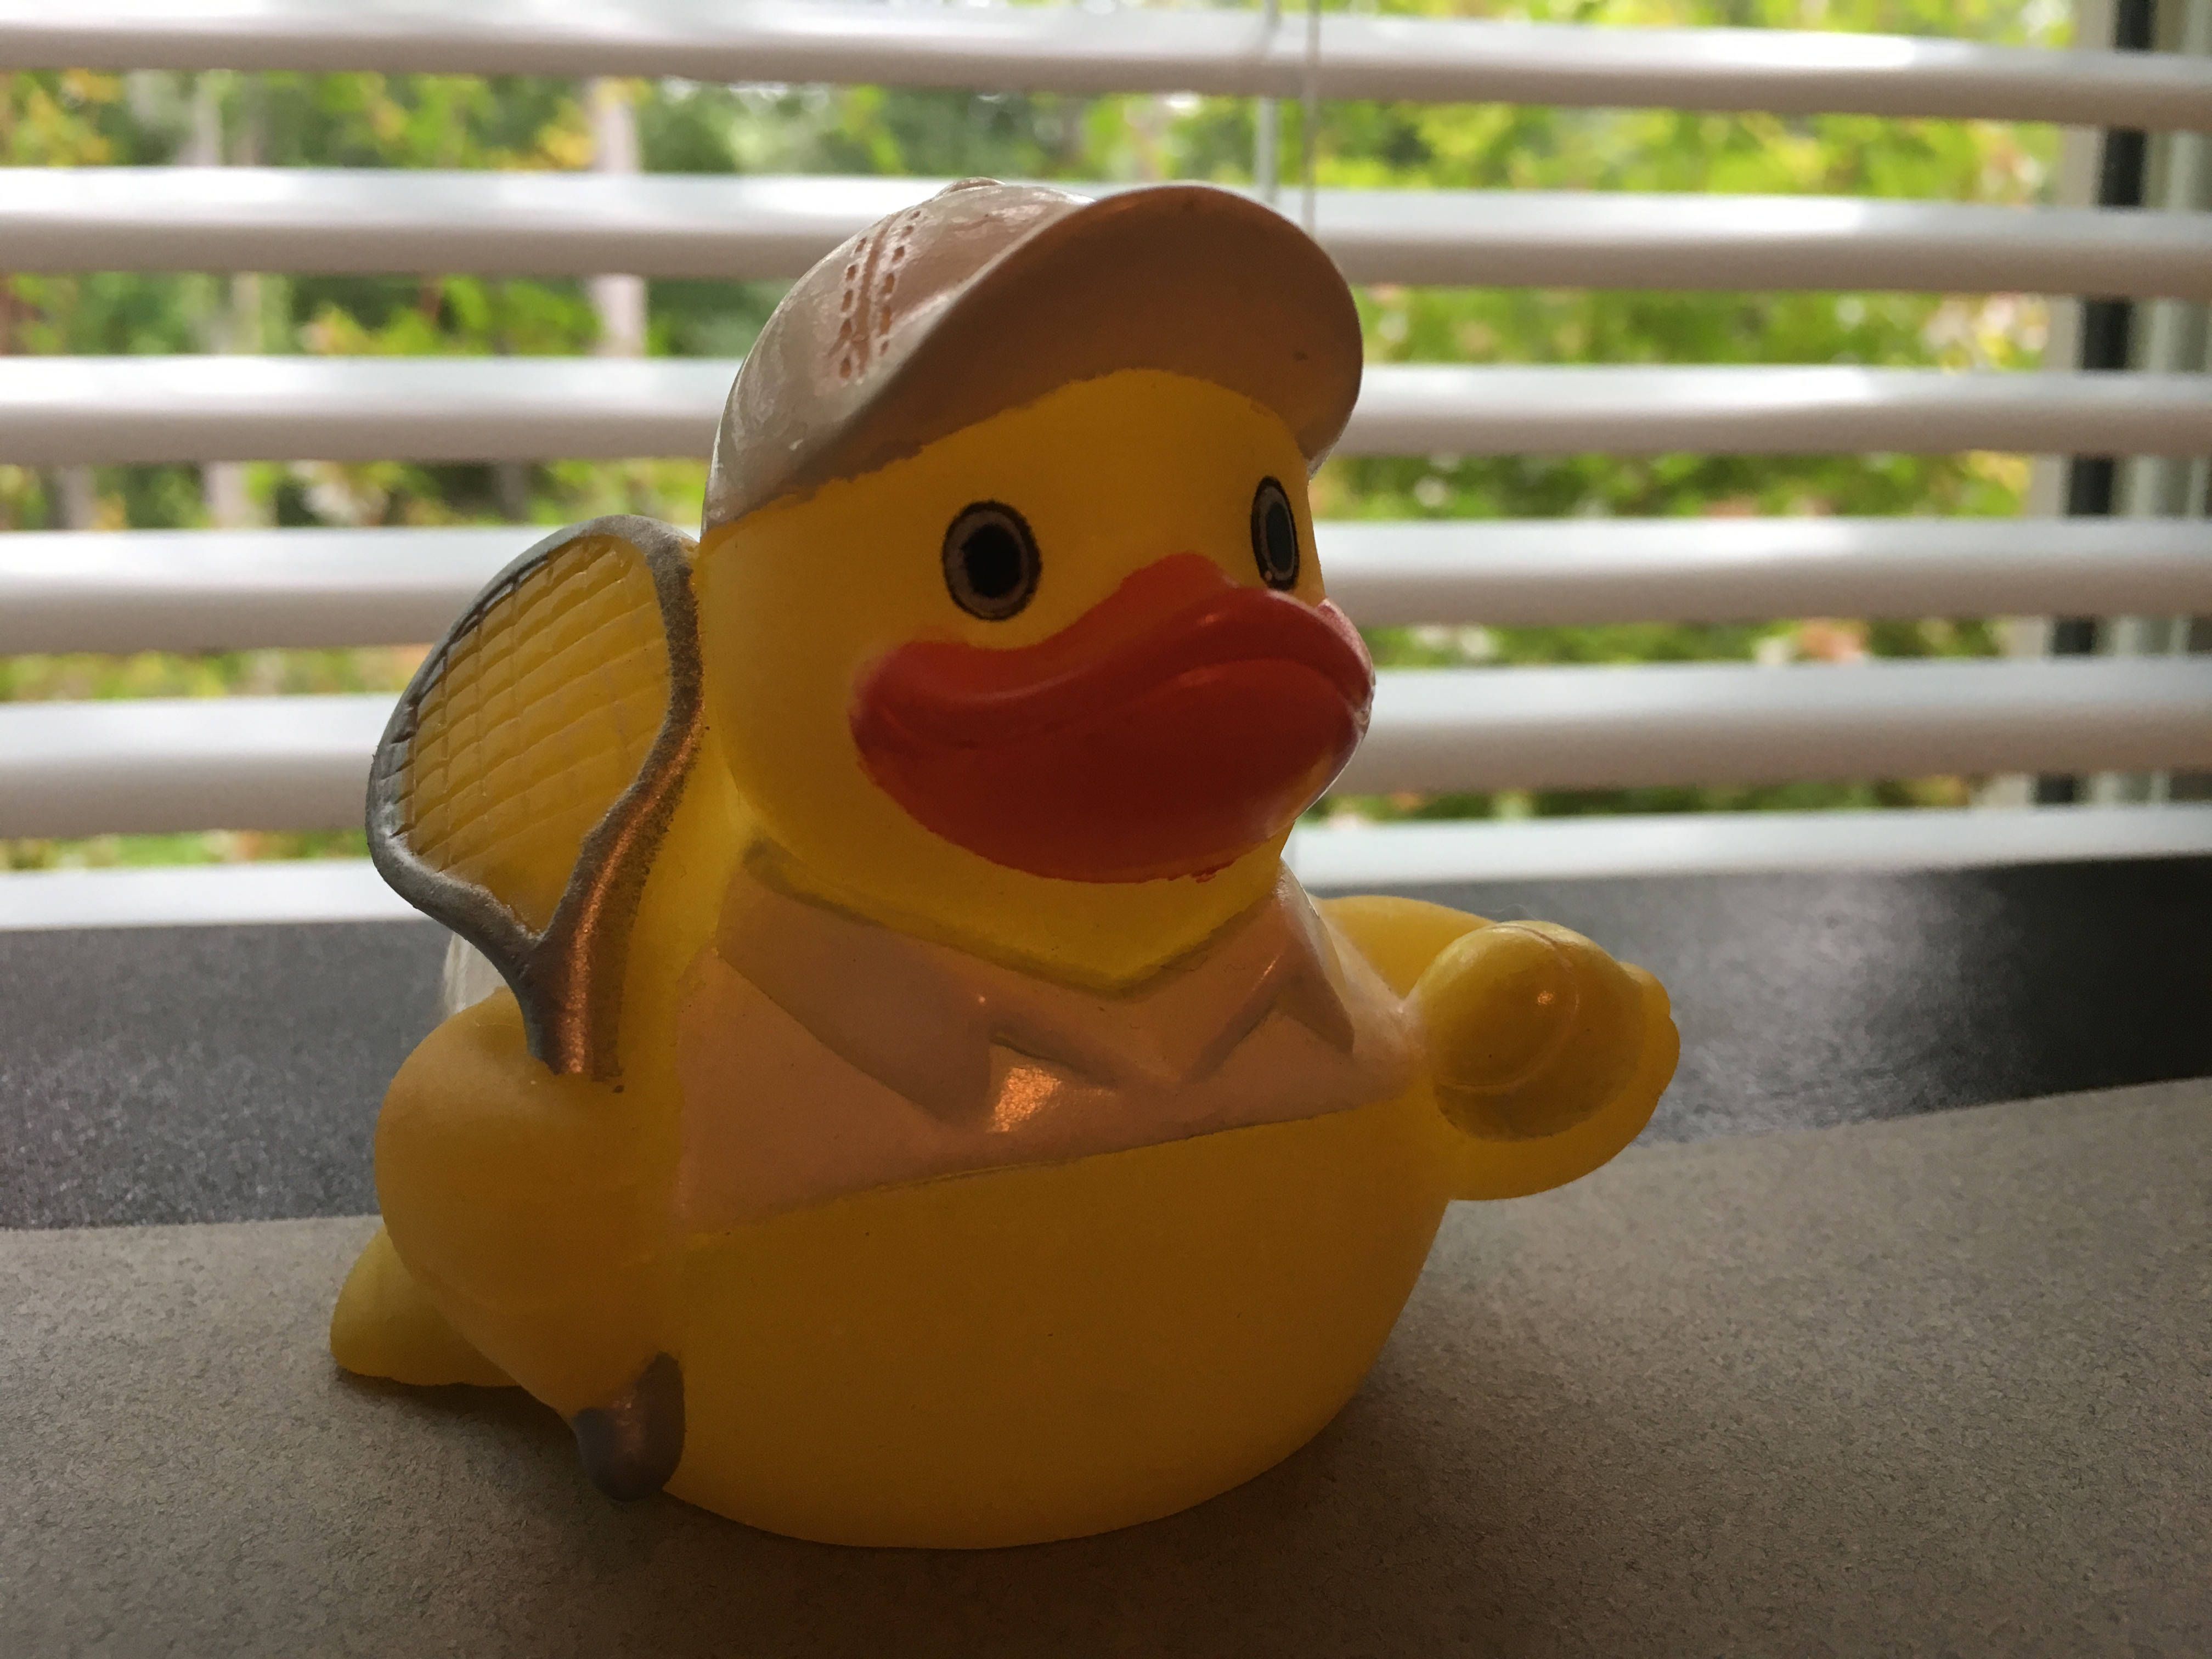 Rubber Ducks images IMG 0728.JPG HD wallpaper and background photos ...